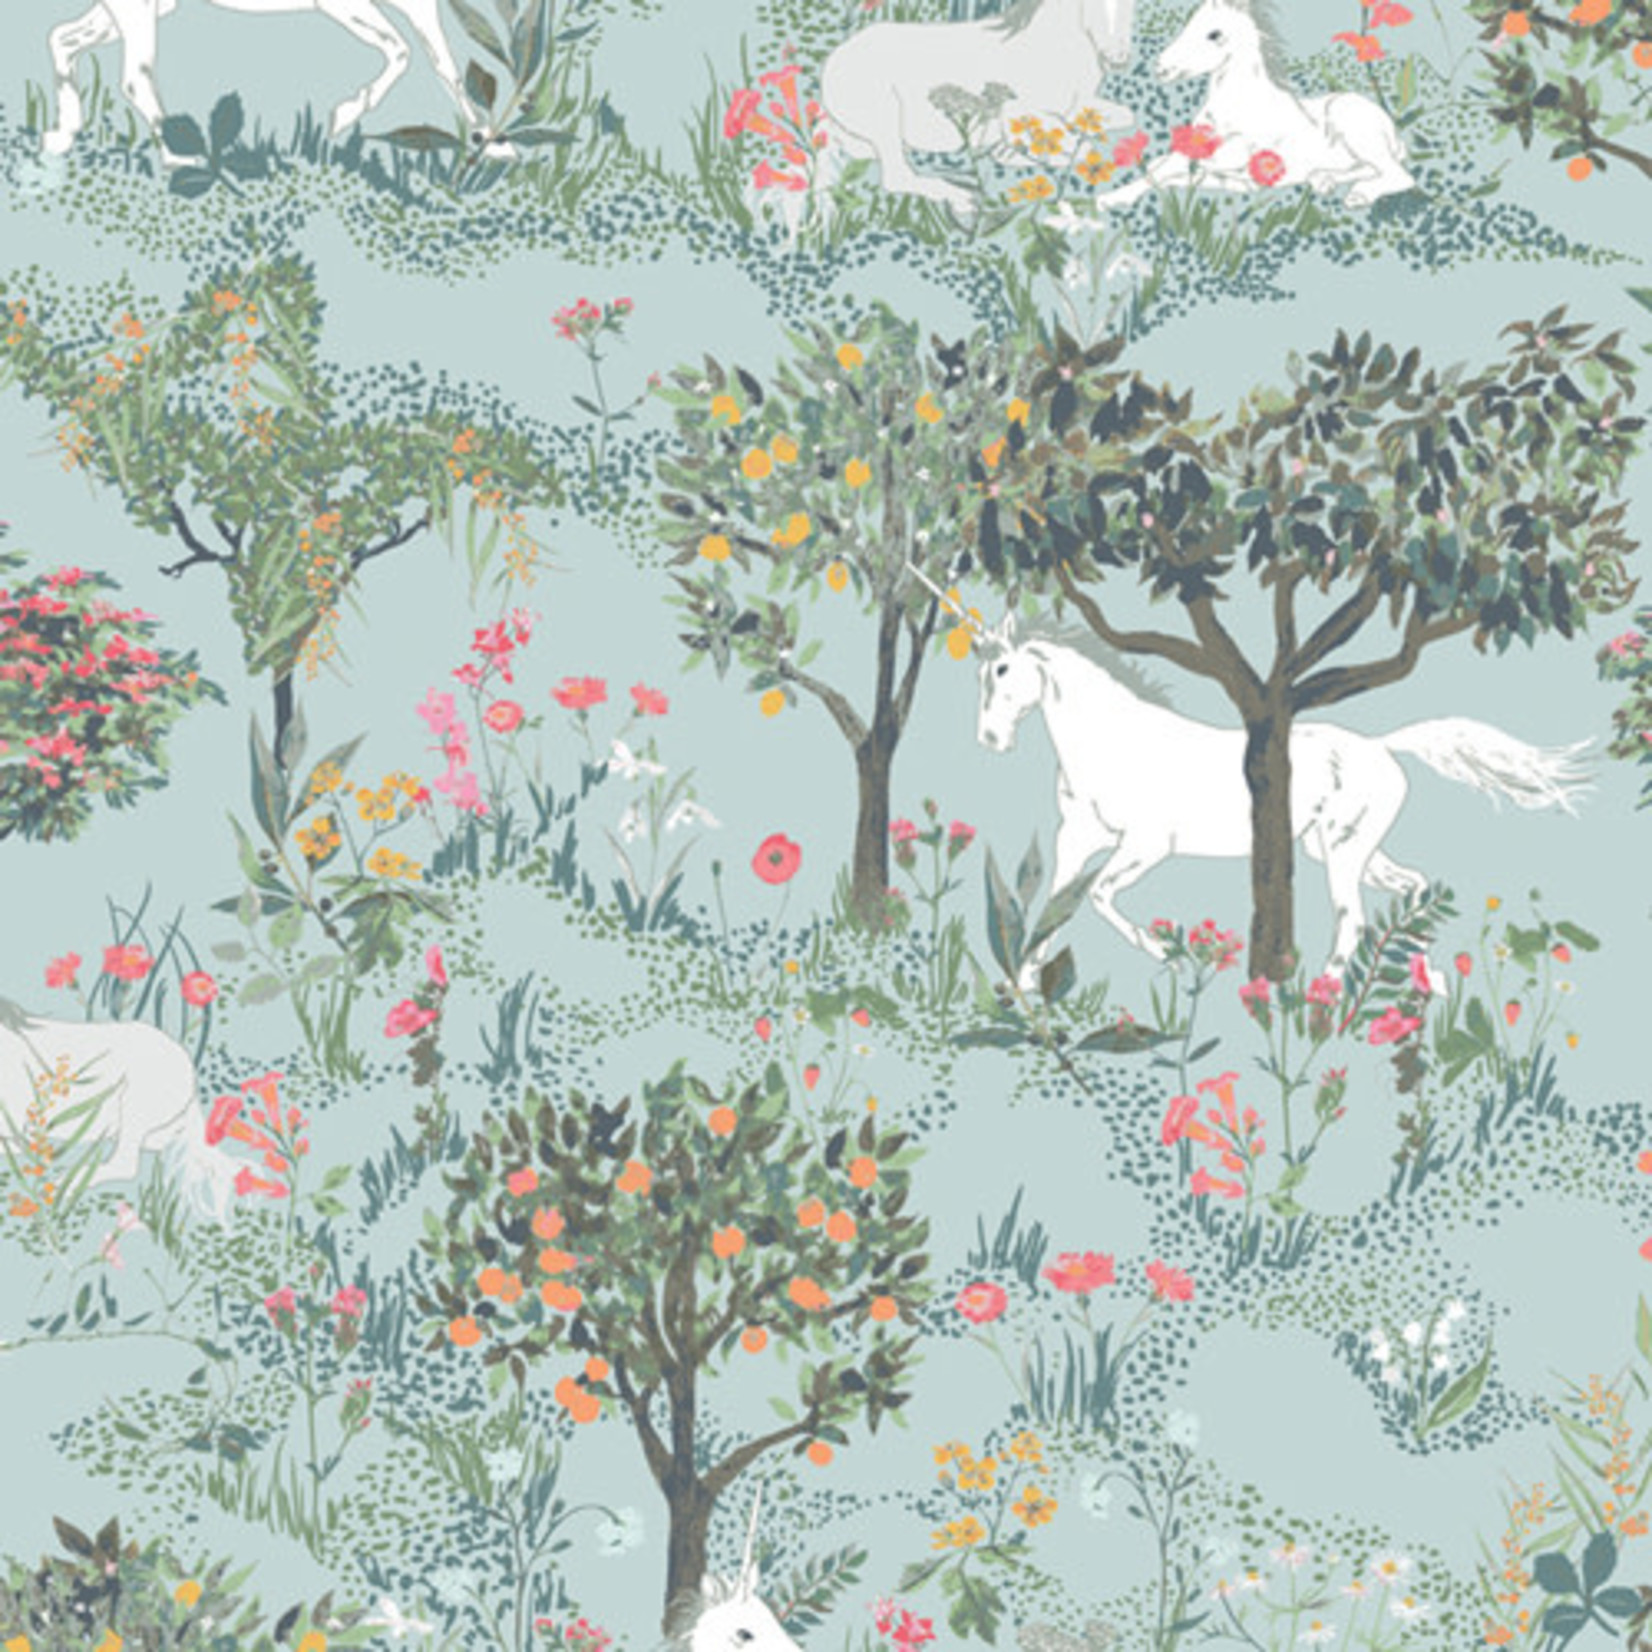 Art Gallery PICTURESQUE, MYTHICAL QUEST BY DAY IN RAYON R-39458 $0.34/cm or $34/m